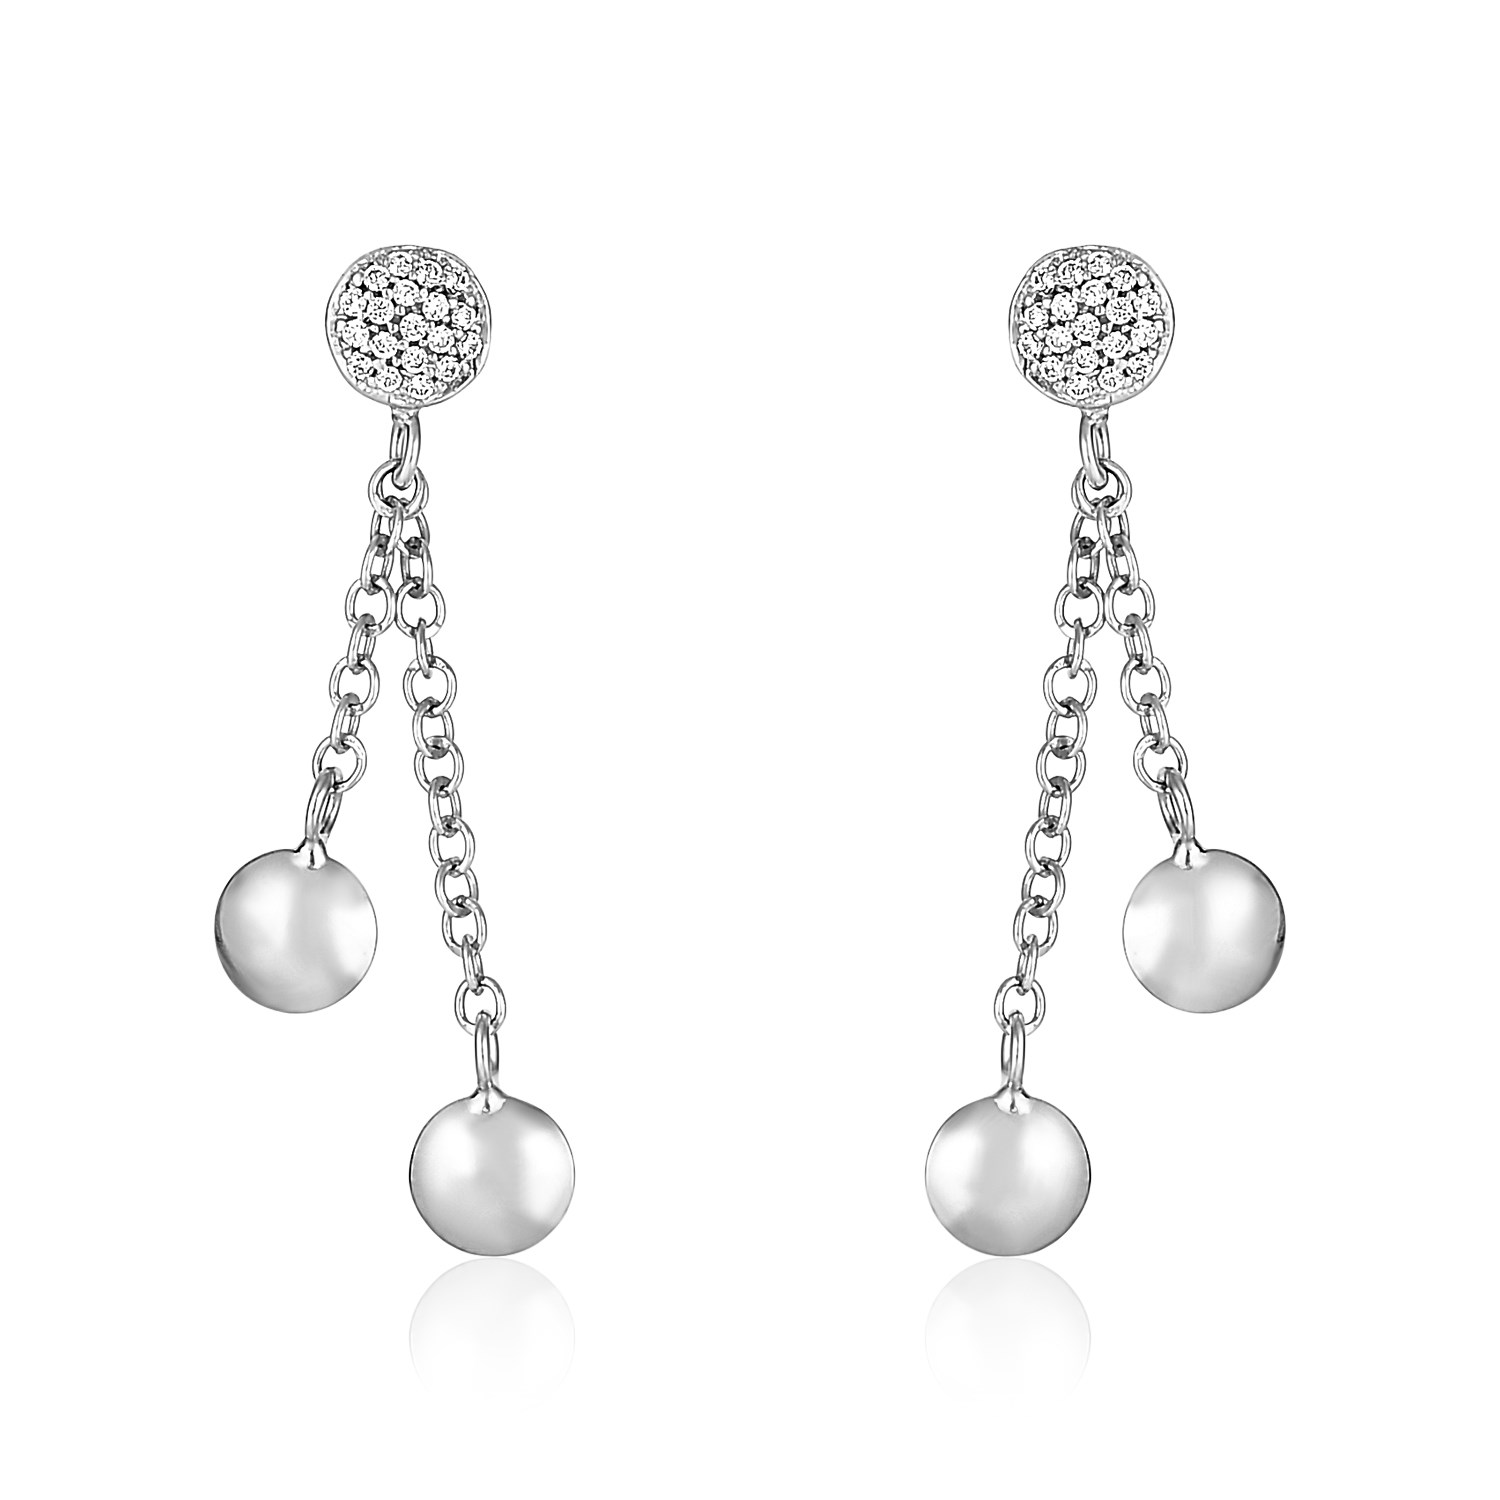 14K White Gold and Diamond Puff Circle Dangle Earrings (1/5 ct.